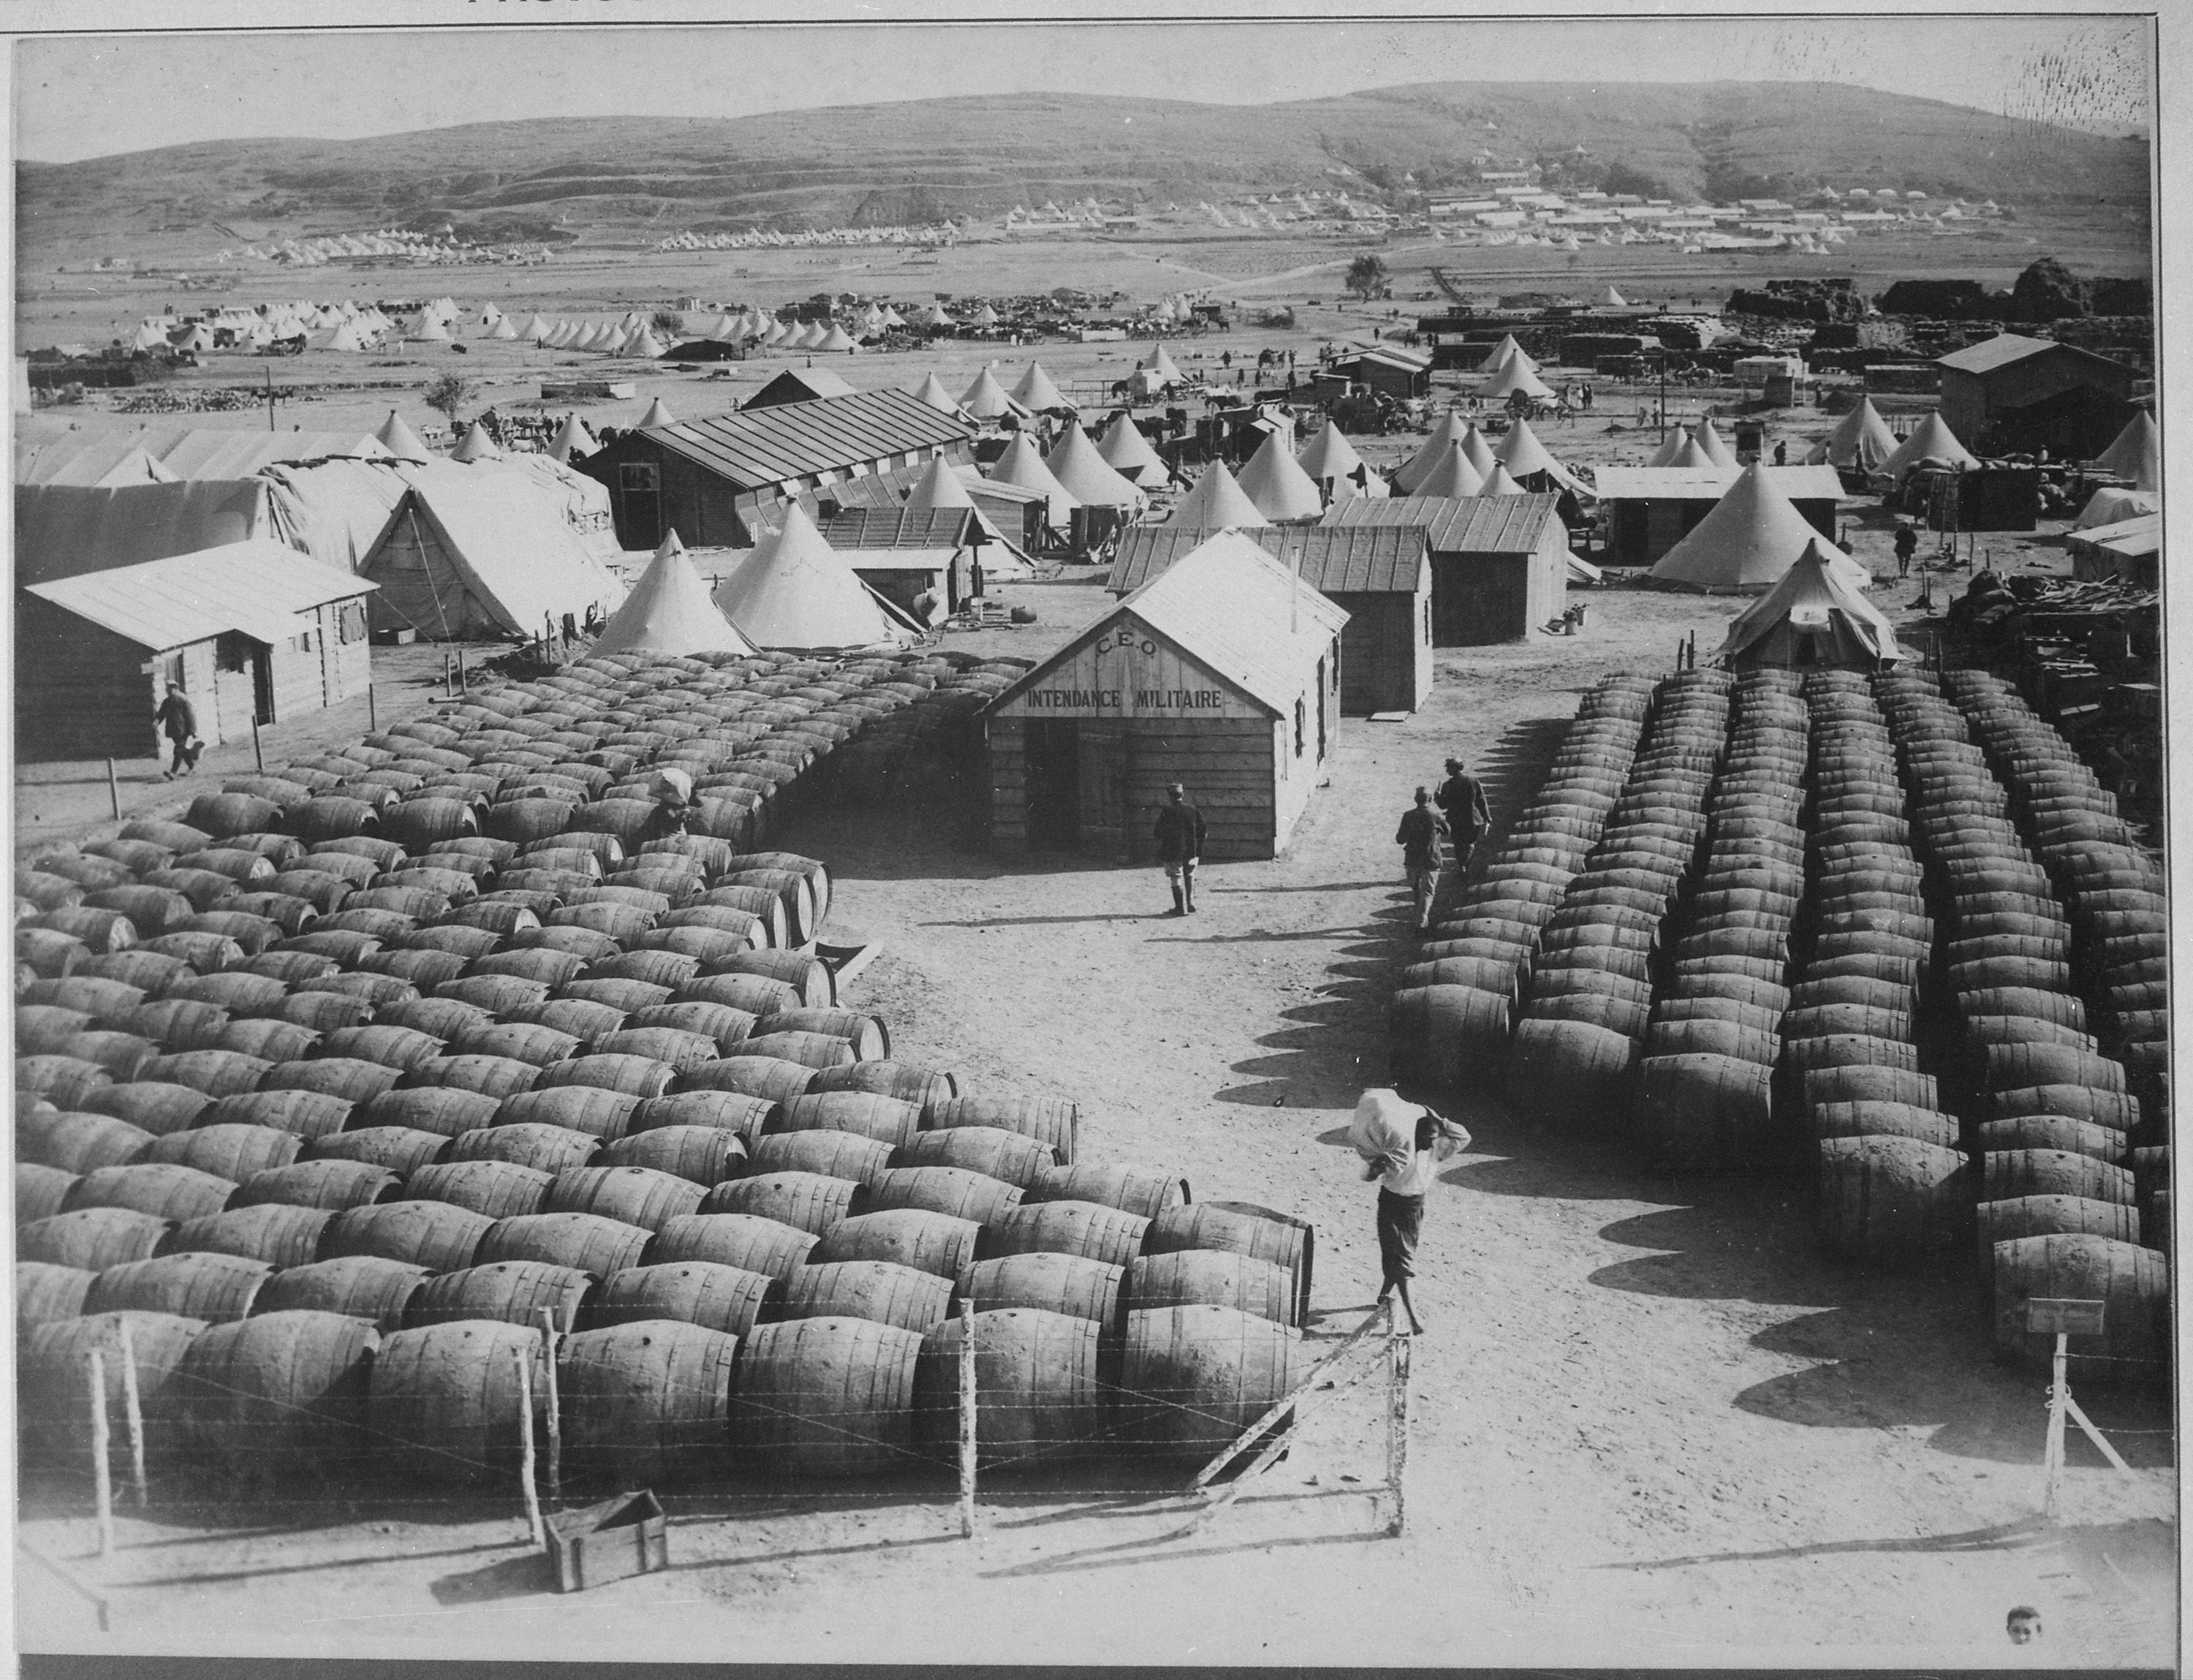 View of Moudros during the Dardanelles Campaign, better known as the Gallipoli Campaign that took place between February 17, 1915, and January 9 1916 , with a French military wine store in the foreground and a hospital in the background